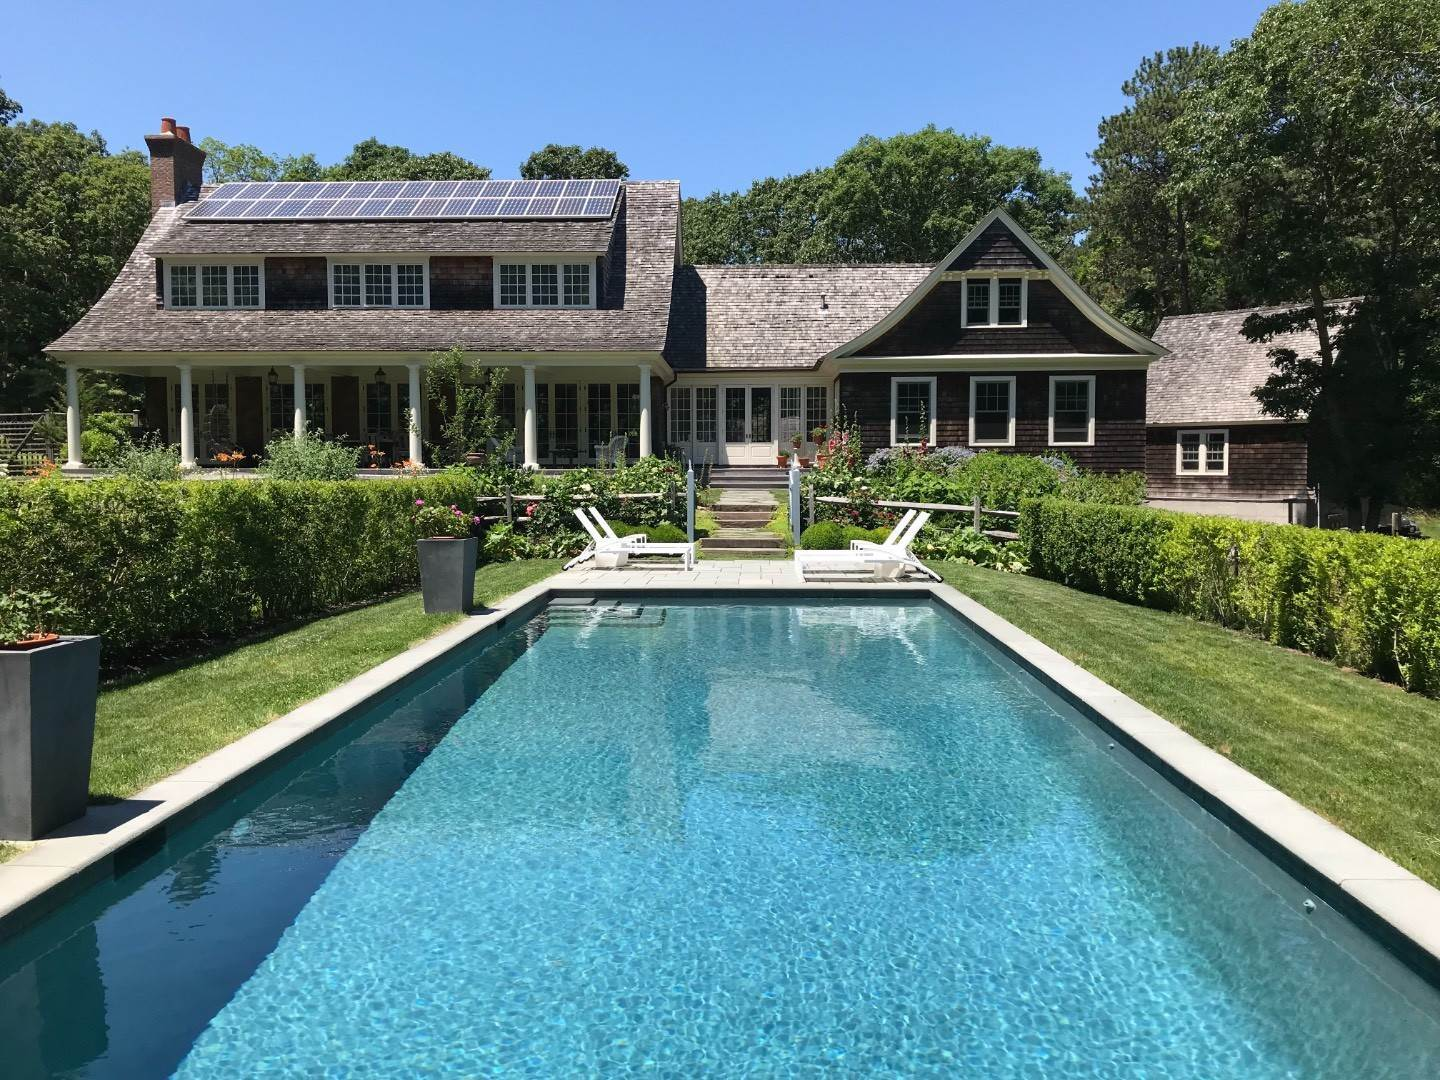 Single Family Home at Amagansett Cranberry Lane Private Oasis Amagansett, NY 11930